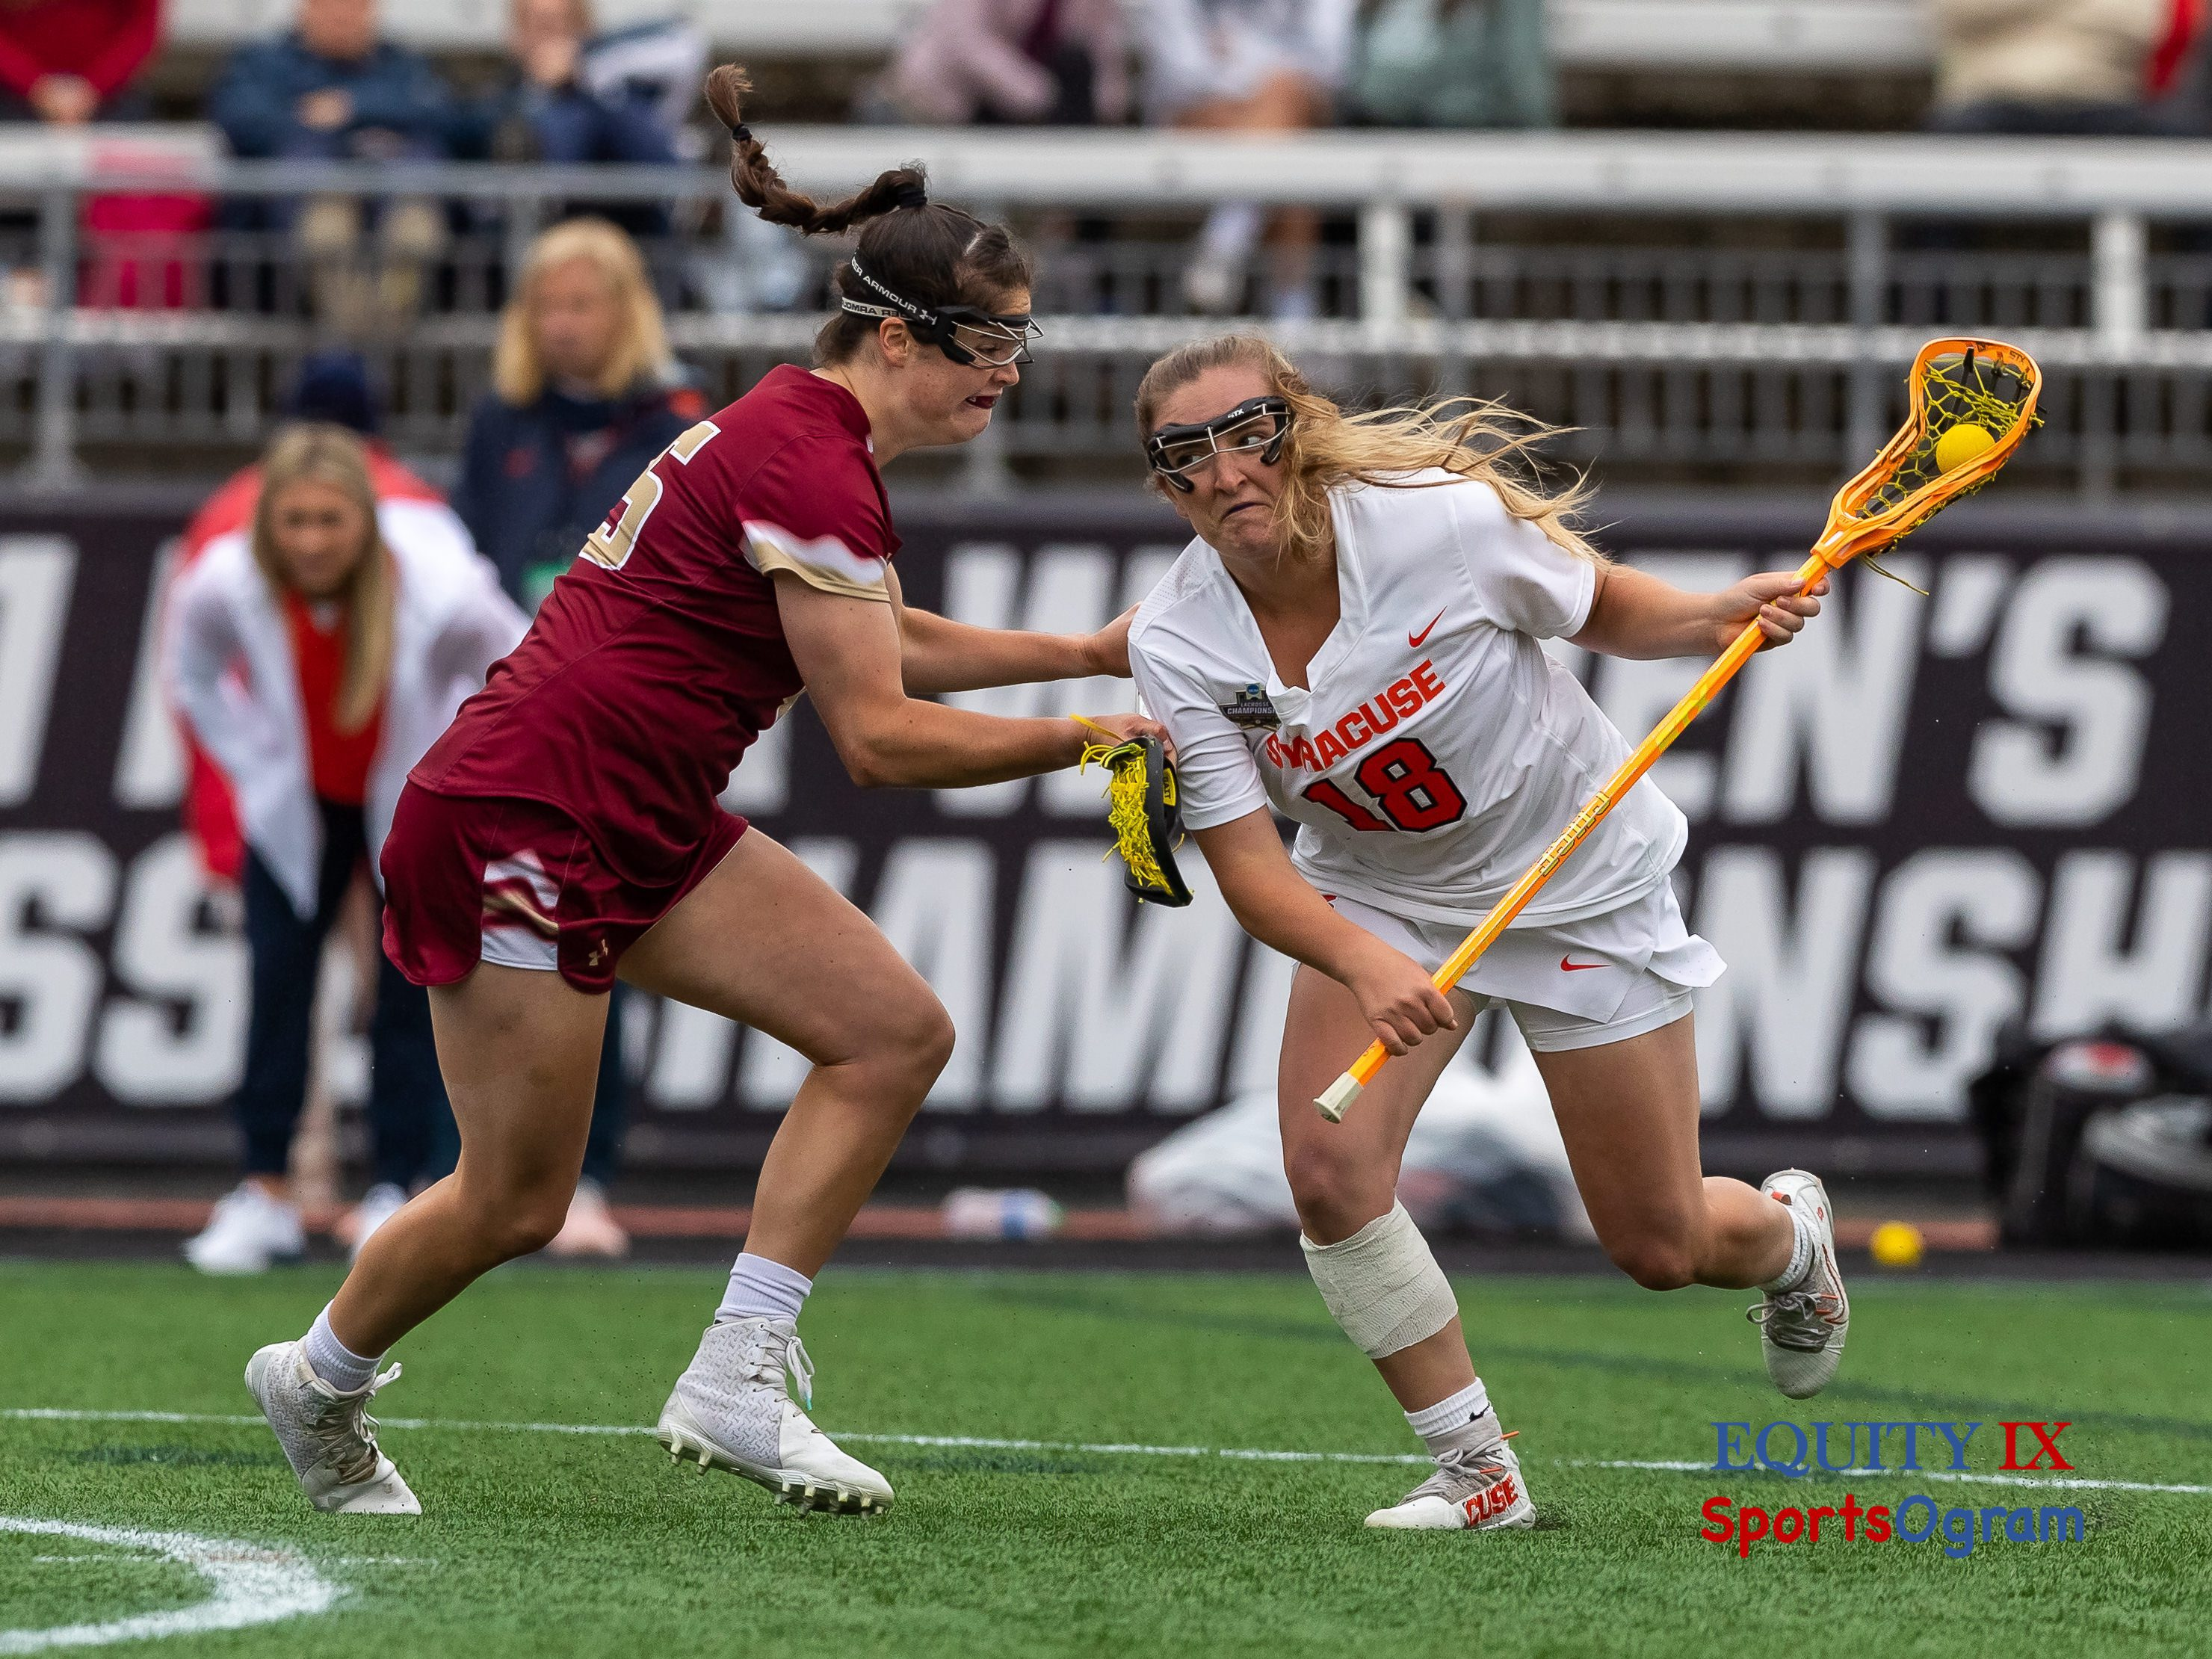 #18 Meaghan Tyrrell (Syracuse) drives to goal left handed with a bandage around her right calf against #45 Sydney Scales (Boston College) - 2021 NCAA Women's Lacrosse Championship Game © Equity IX - SportsOgram - Leigh Ernst Friestedt